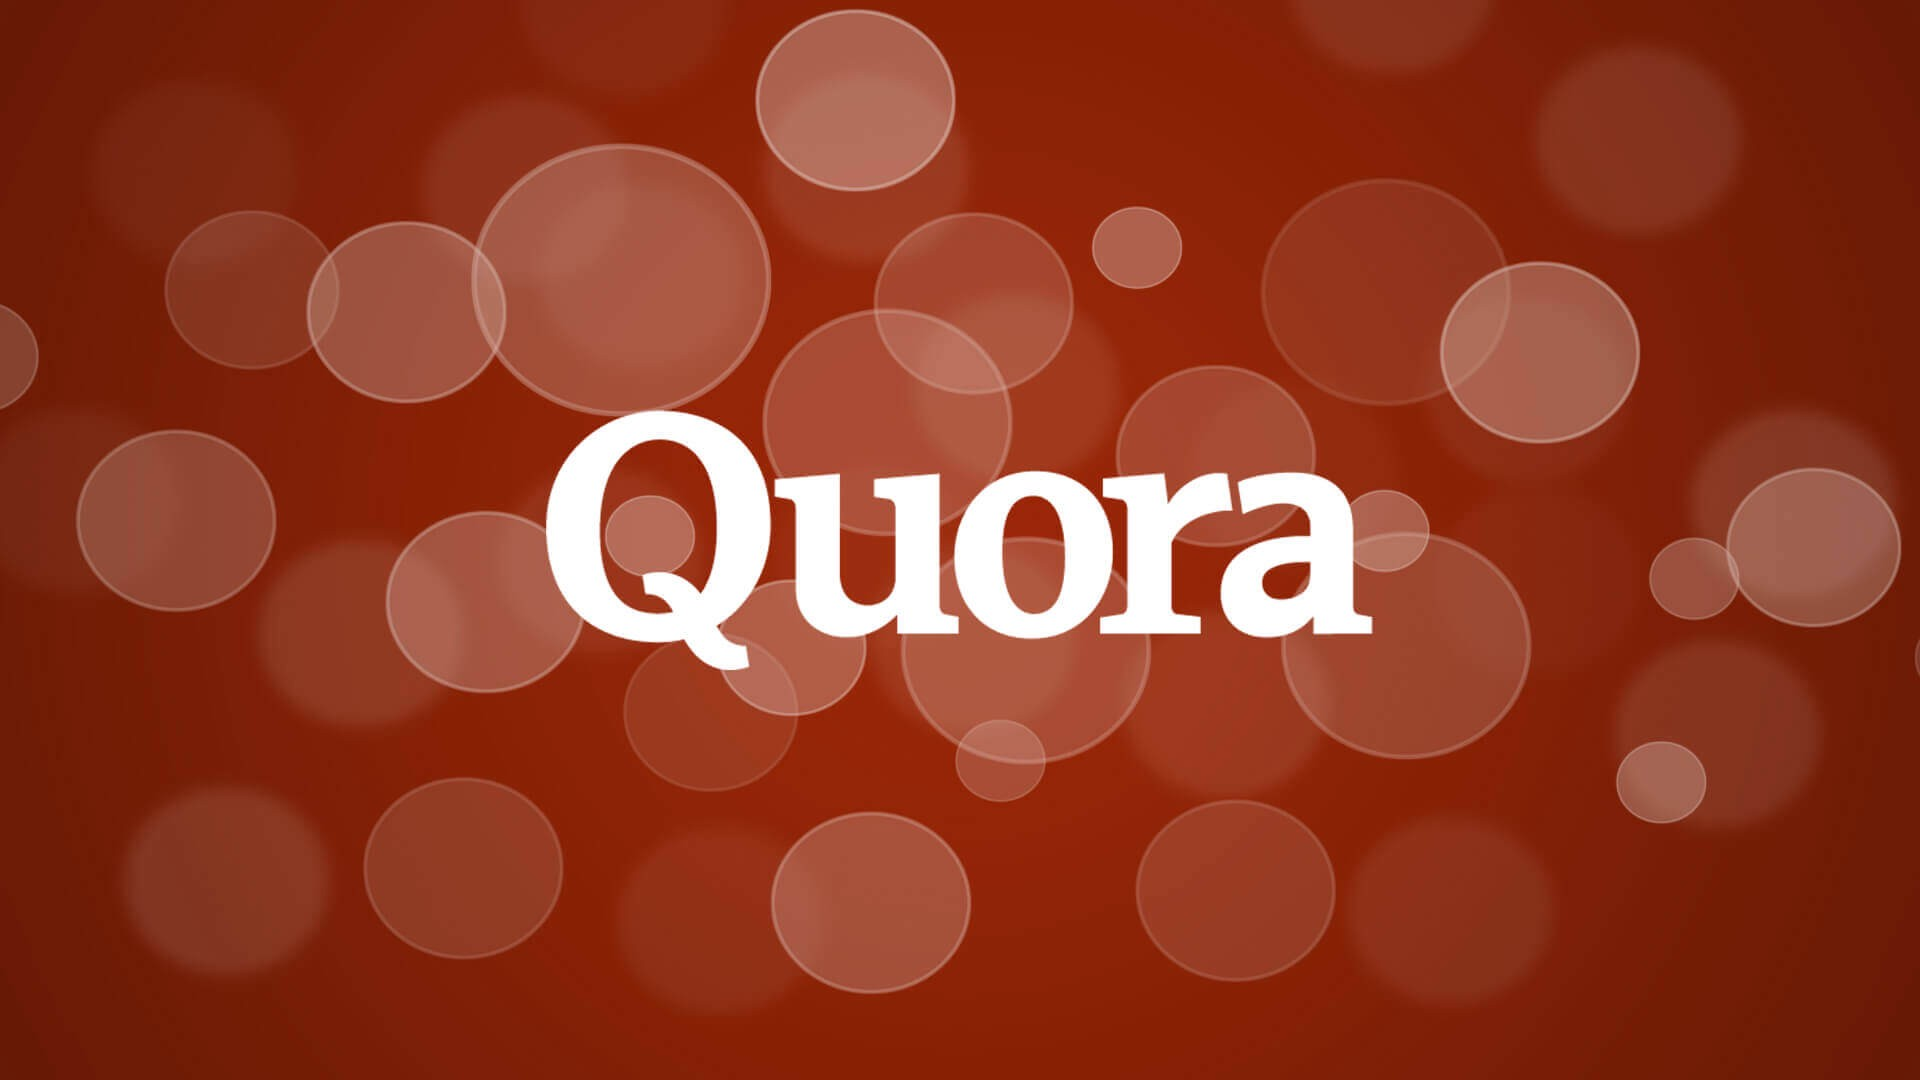 Rit ms cs quora